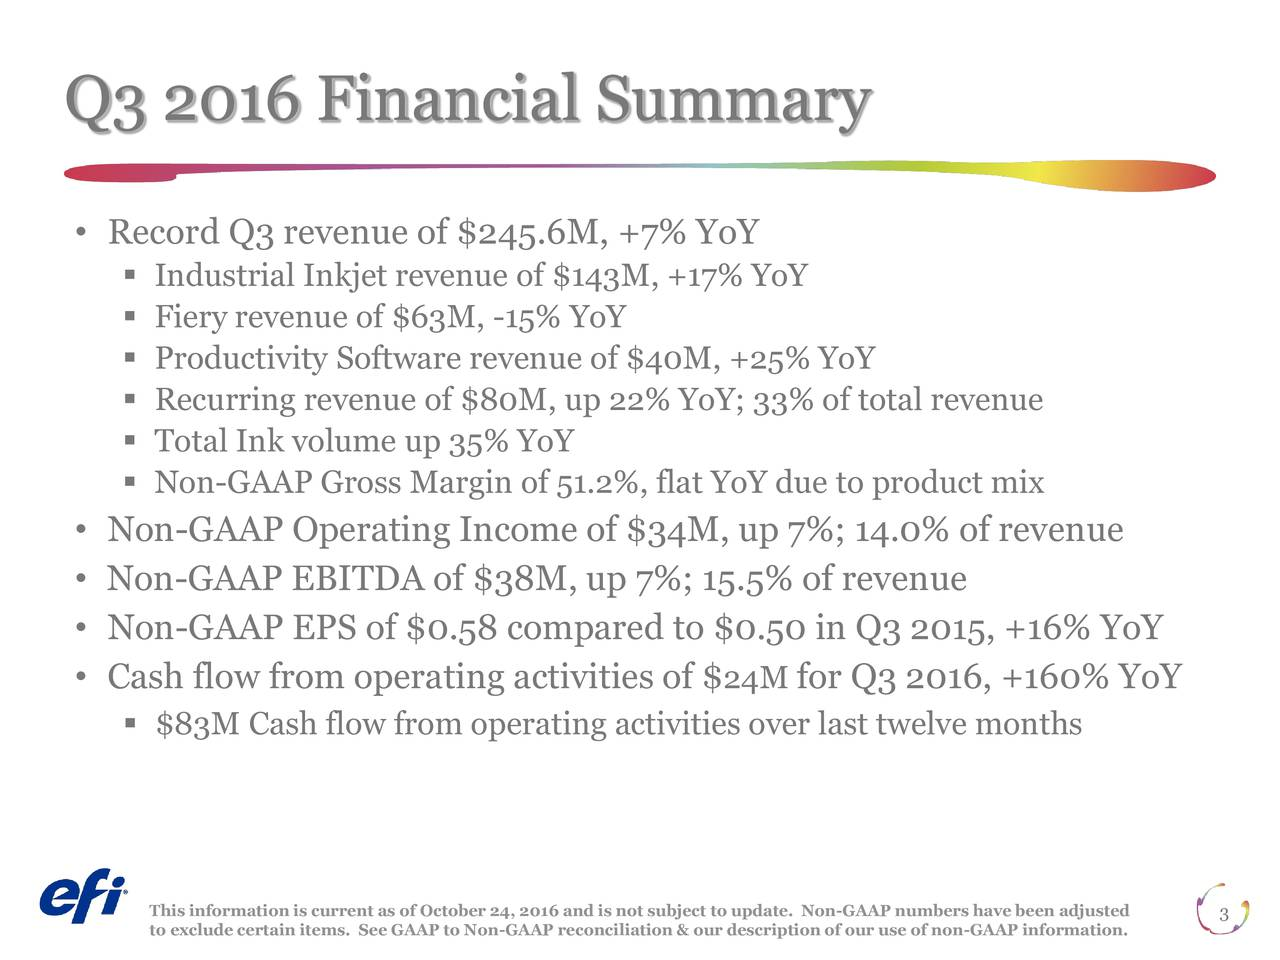 Record Q3 revenue of $245.6M, +7% YoY Industrial Inkjet revenue of $143M, +17% YoY Fiery revenue of $63M, -15% YoY Productivity Software revenue of $40M, +25% YoY Recurring revenue of $80M, up 22% YoY; 33% of total revenue Total Ink volume up 35% YoY Non-GAAP Gross Margin of 51.2%, flat YoY due to product mix Non-GAAP Operating Income of $34M, up 7%; 14.0% of revenue Non-GAAP EBITDA of $38M, up 7%; 15.5% of revenue Non-GAAP EPS of $0.58 compared to $0.50 in Q3 2015, +16% YoY Cash flow from operating activities of $24M for Q3 2016, +160% YoY $83M Cash flow from operating activities over last twelve months to exclude certain items. See GAAP to Non-GAAP reconciliation & our description of our use of non-GAAP information.d